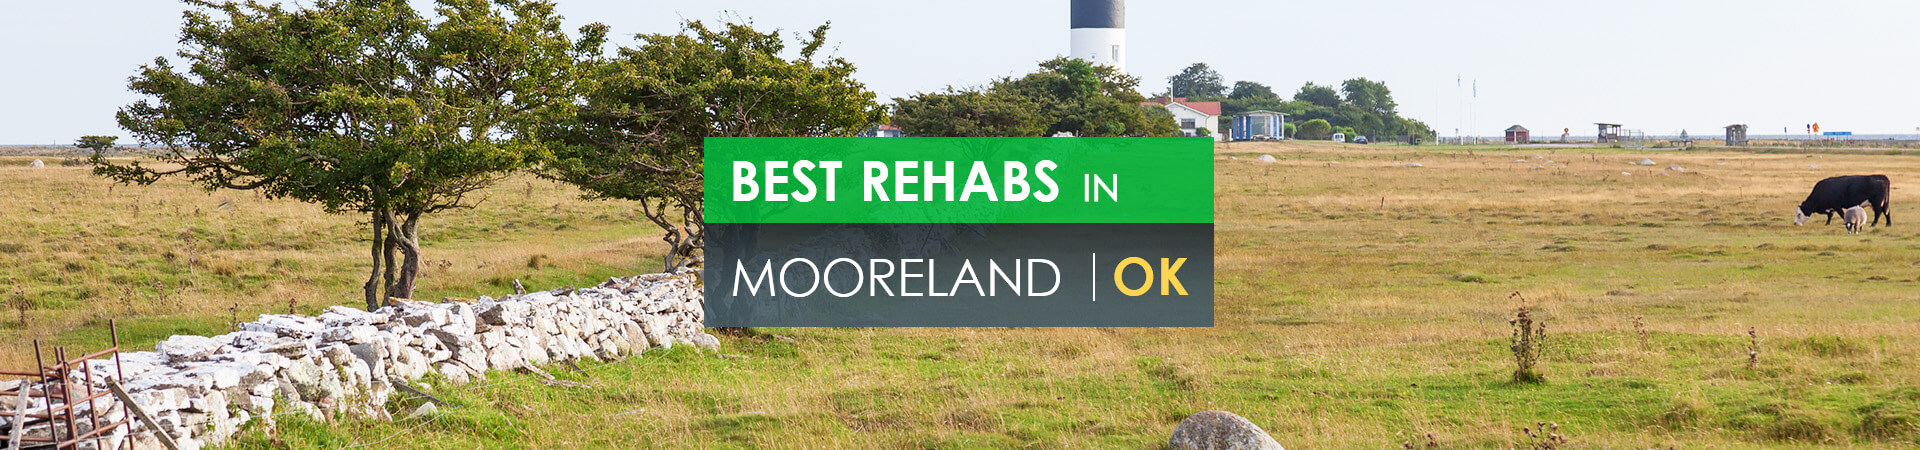 Best rehabs in Mooreland, OK